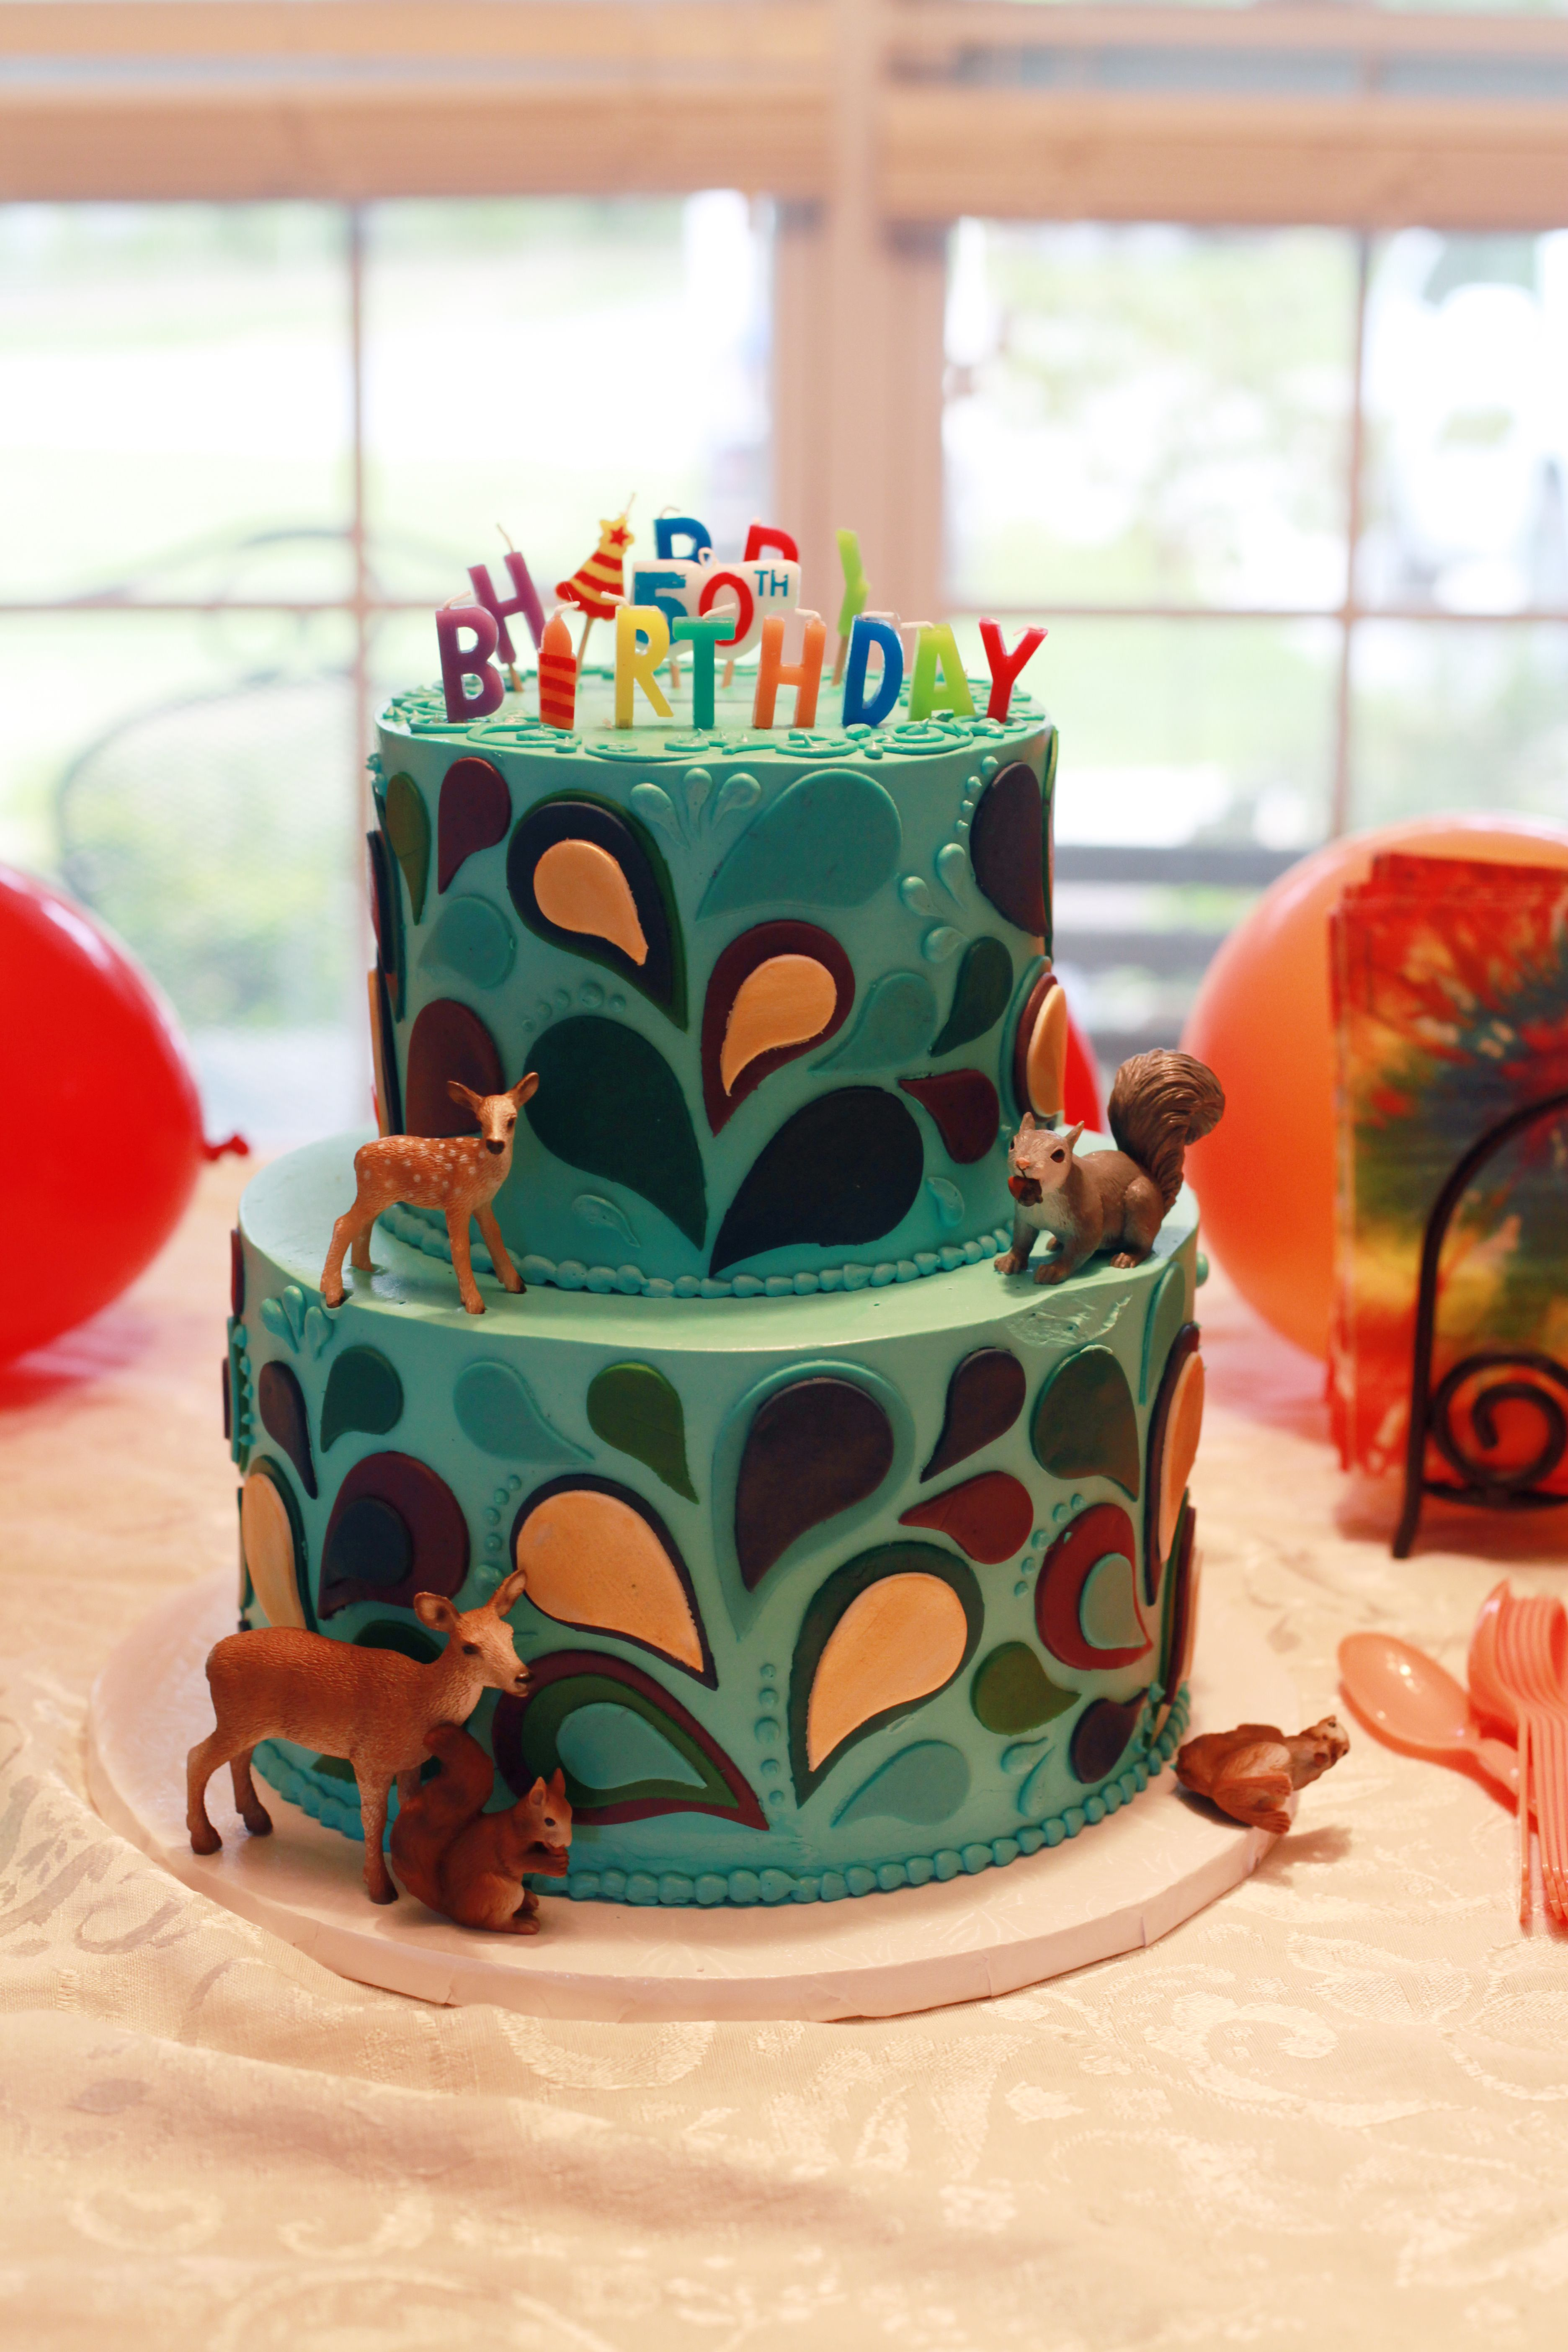 Marvelous My Moms Birthday Cake Made From Delicious Bakery In Greensboro Nc Birthday Cards Printable Trancafe Filternl